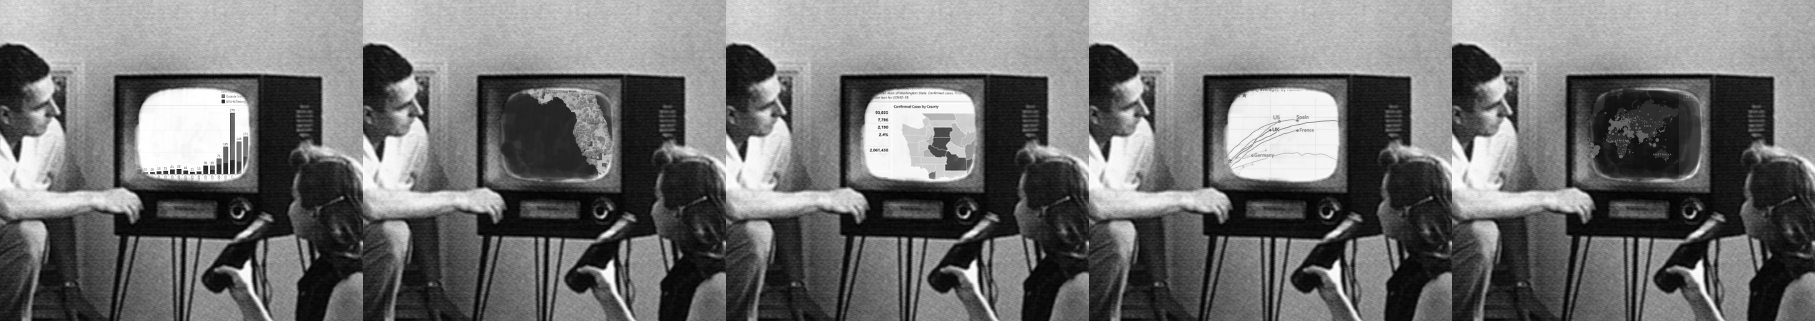 American family watches a parade of dashboards on a 1950s TV set